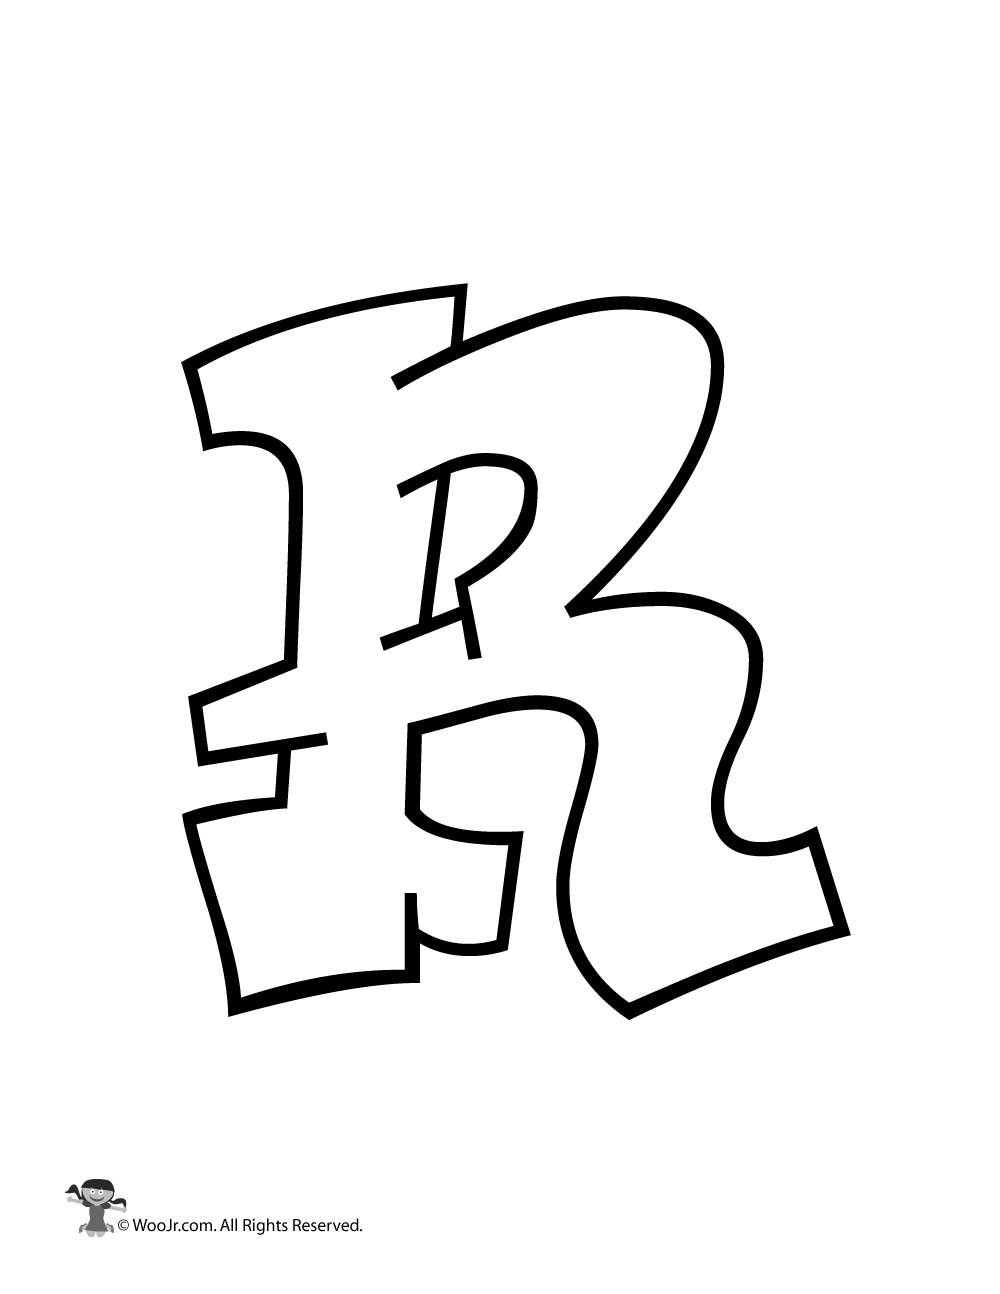 graffiti capital letter r